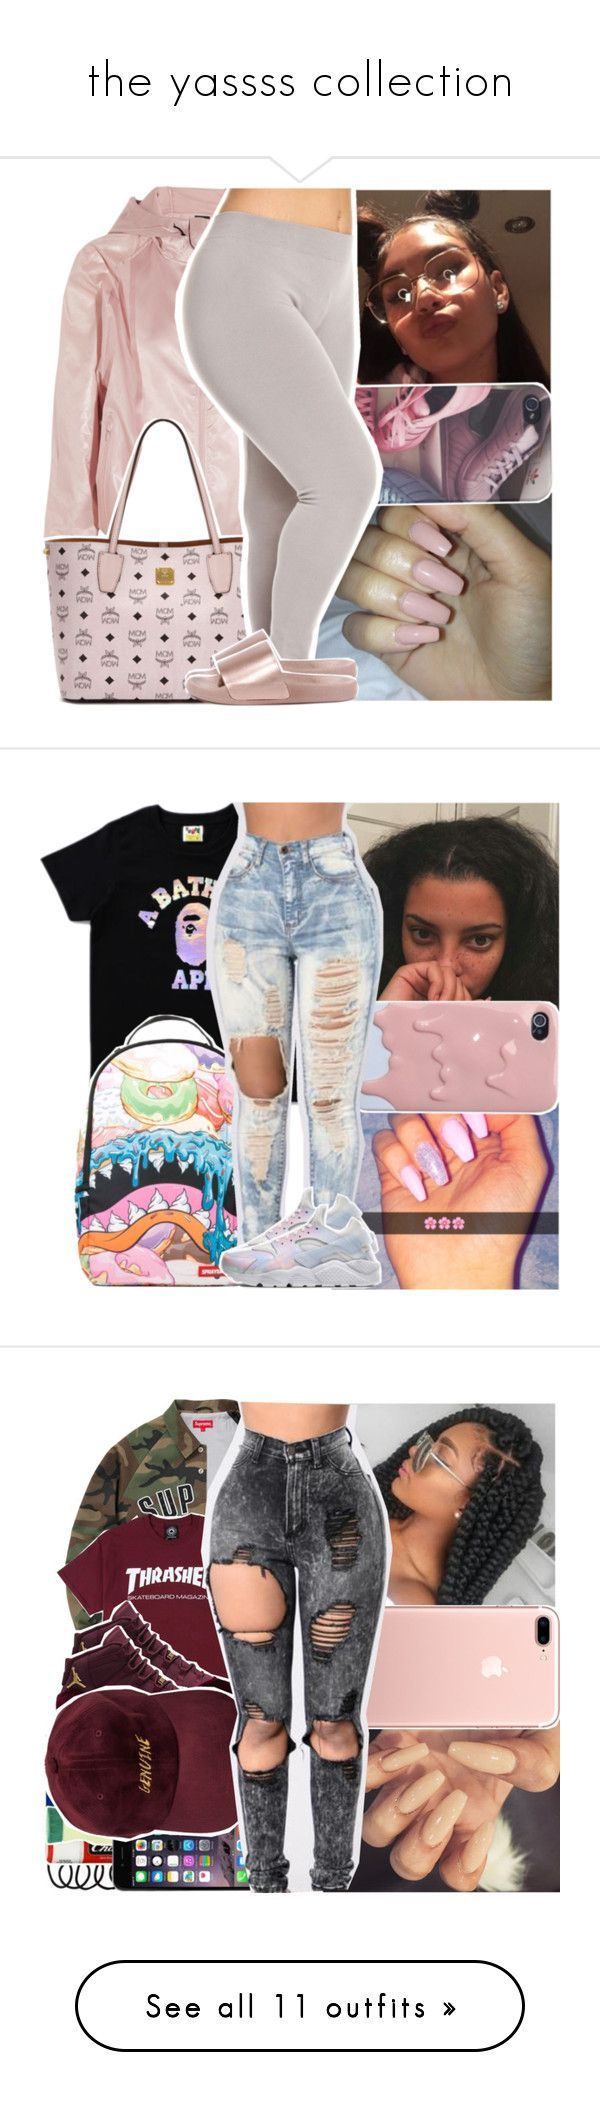 the yassss collection by pinksemia ❤ liked on Polyvore featuring NIKE, MCM, Bamboo, Sprayground, Casetify, adidas Originals, MICHAEL Michael Kors, UGG Australia, Furla and adidas